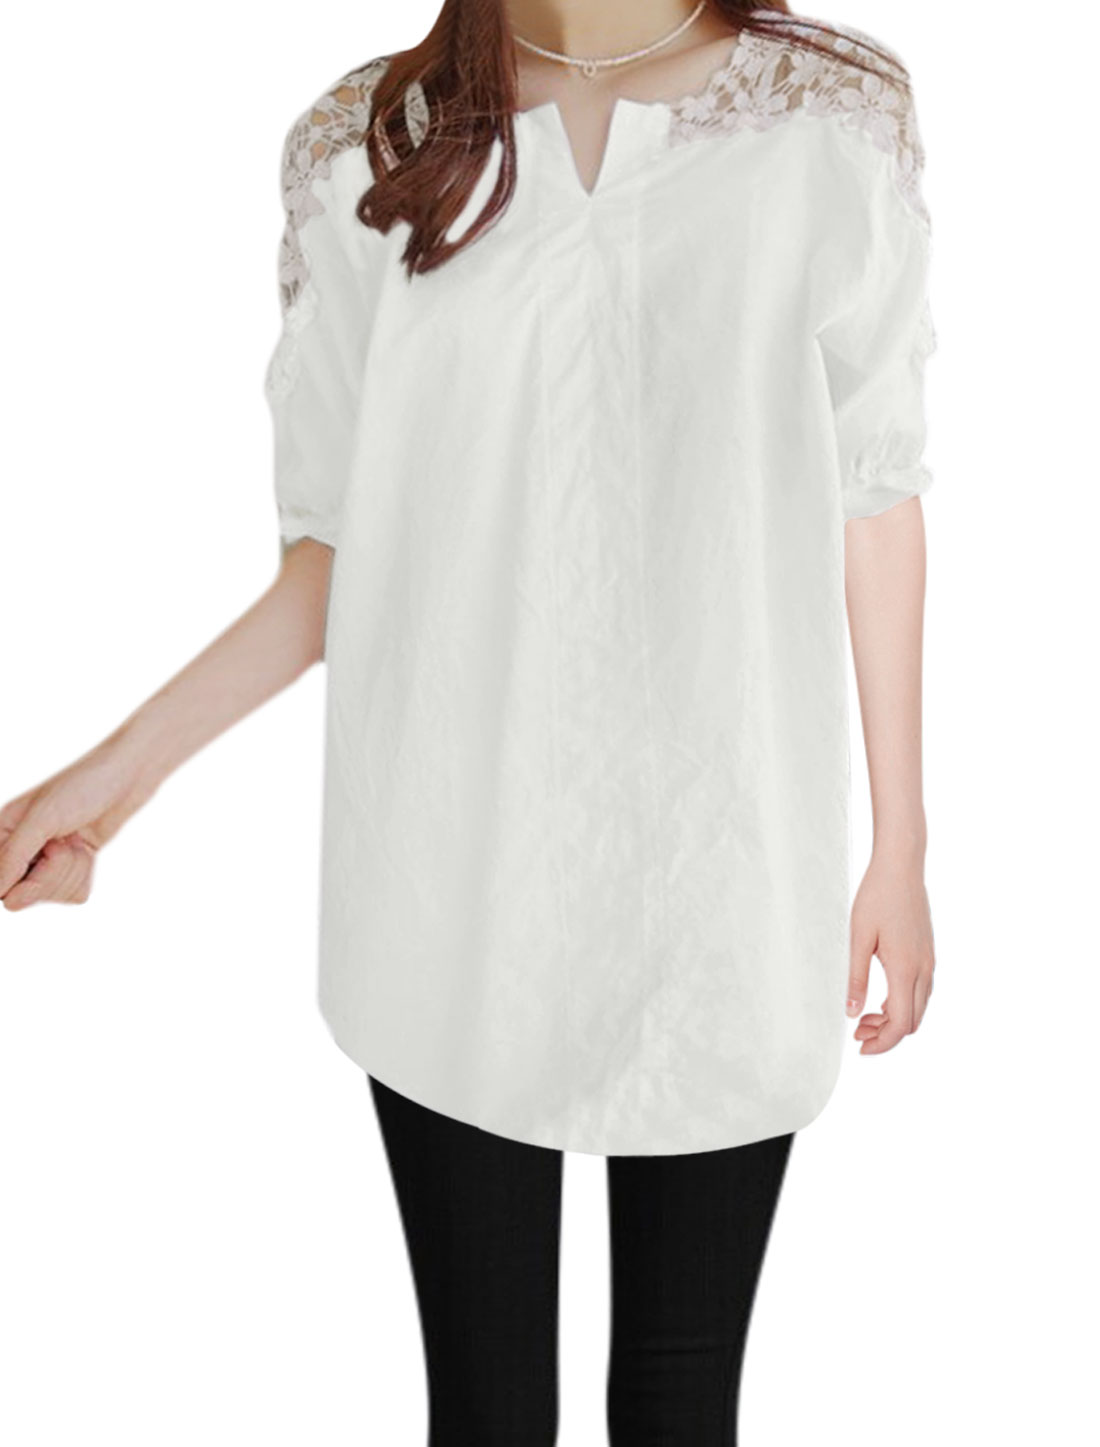 Women Split Neck Elbow Sleeves Floral Design Casual Tops White S